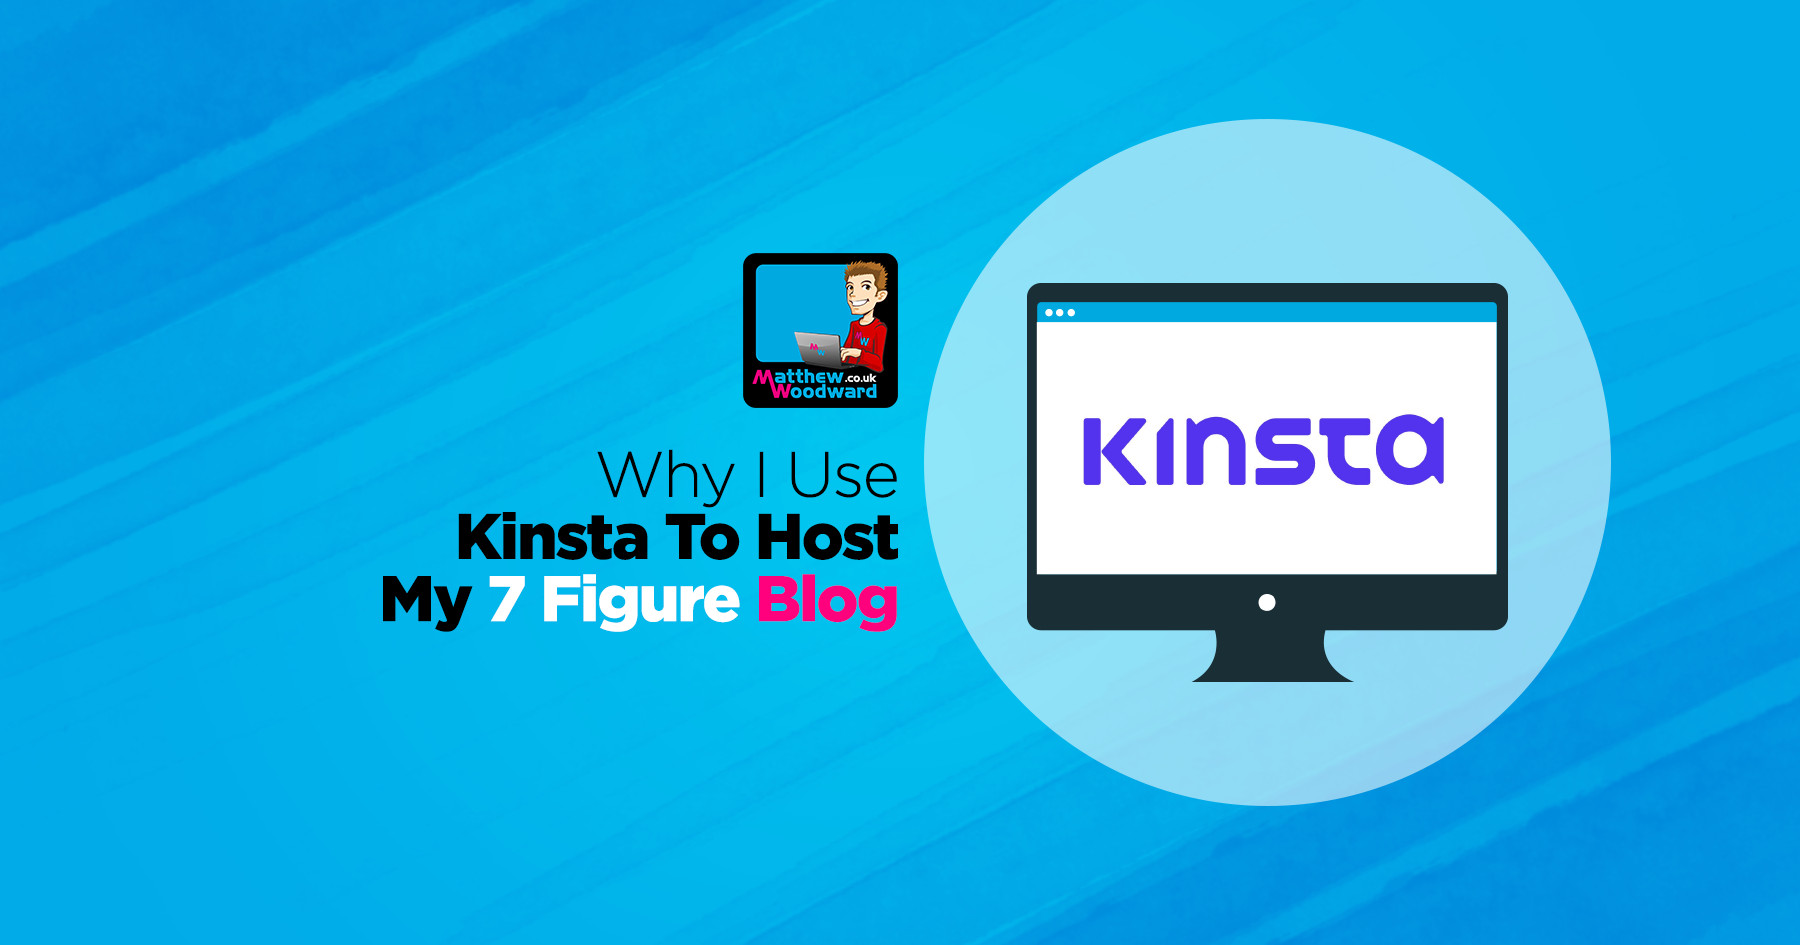 Kinsta Review - Why They Host My 7 Figure Blog